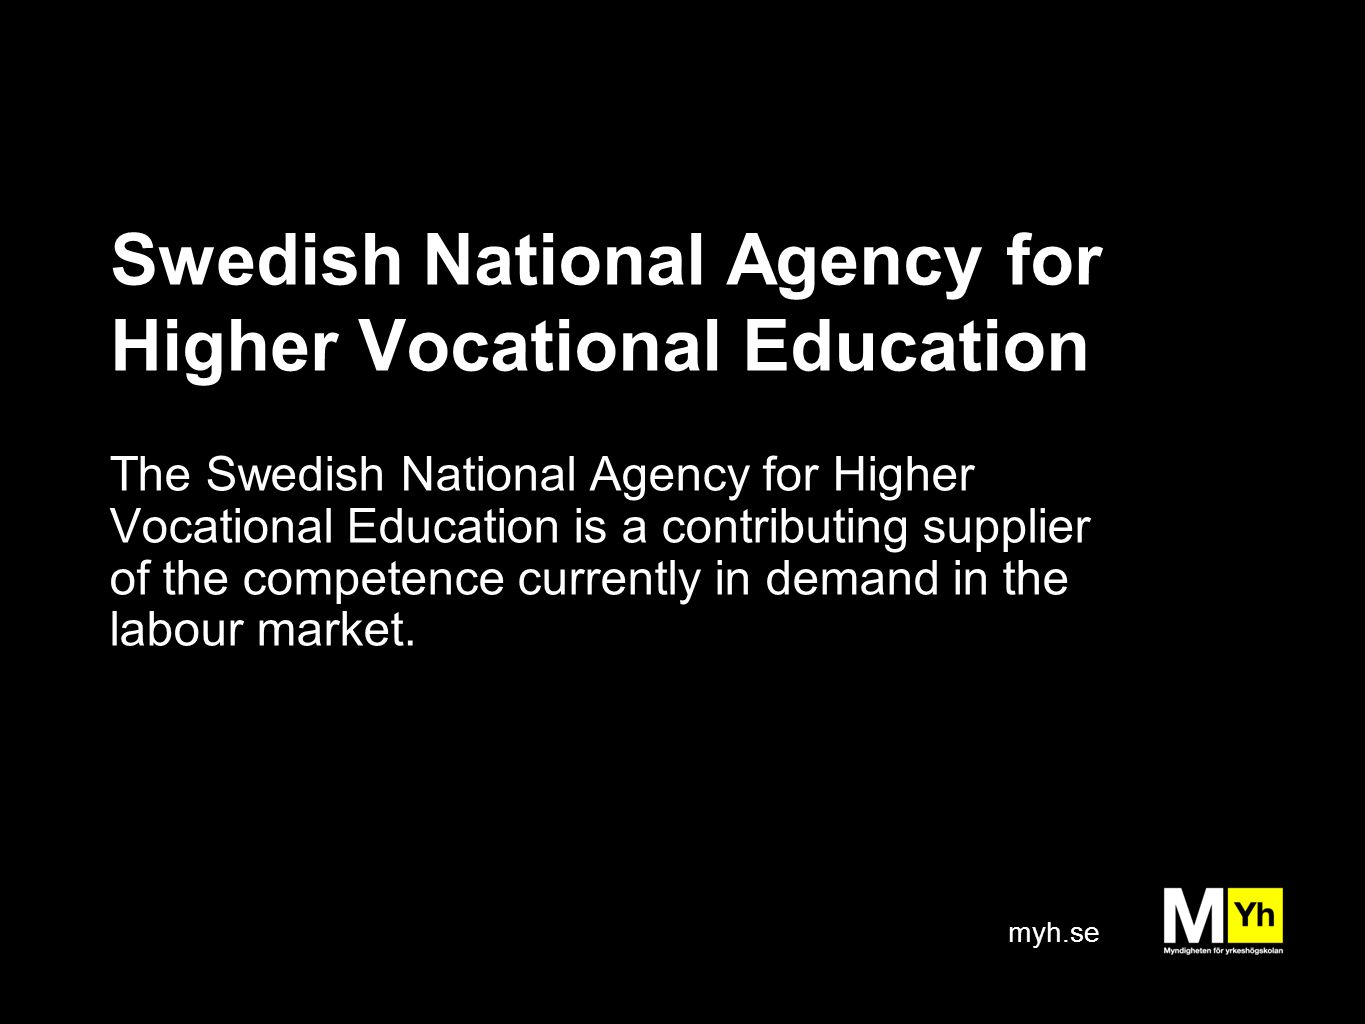 myh.se Swedish National Agency for Higher Vocational Education The Swedish National Agency for Higher Vocational Education is a contributing supplier of the competence currently in demand in the labour market.